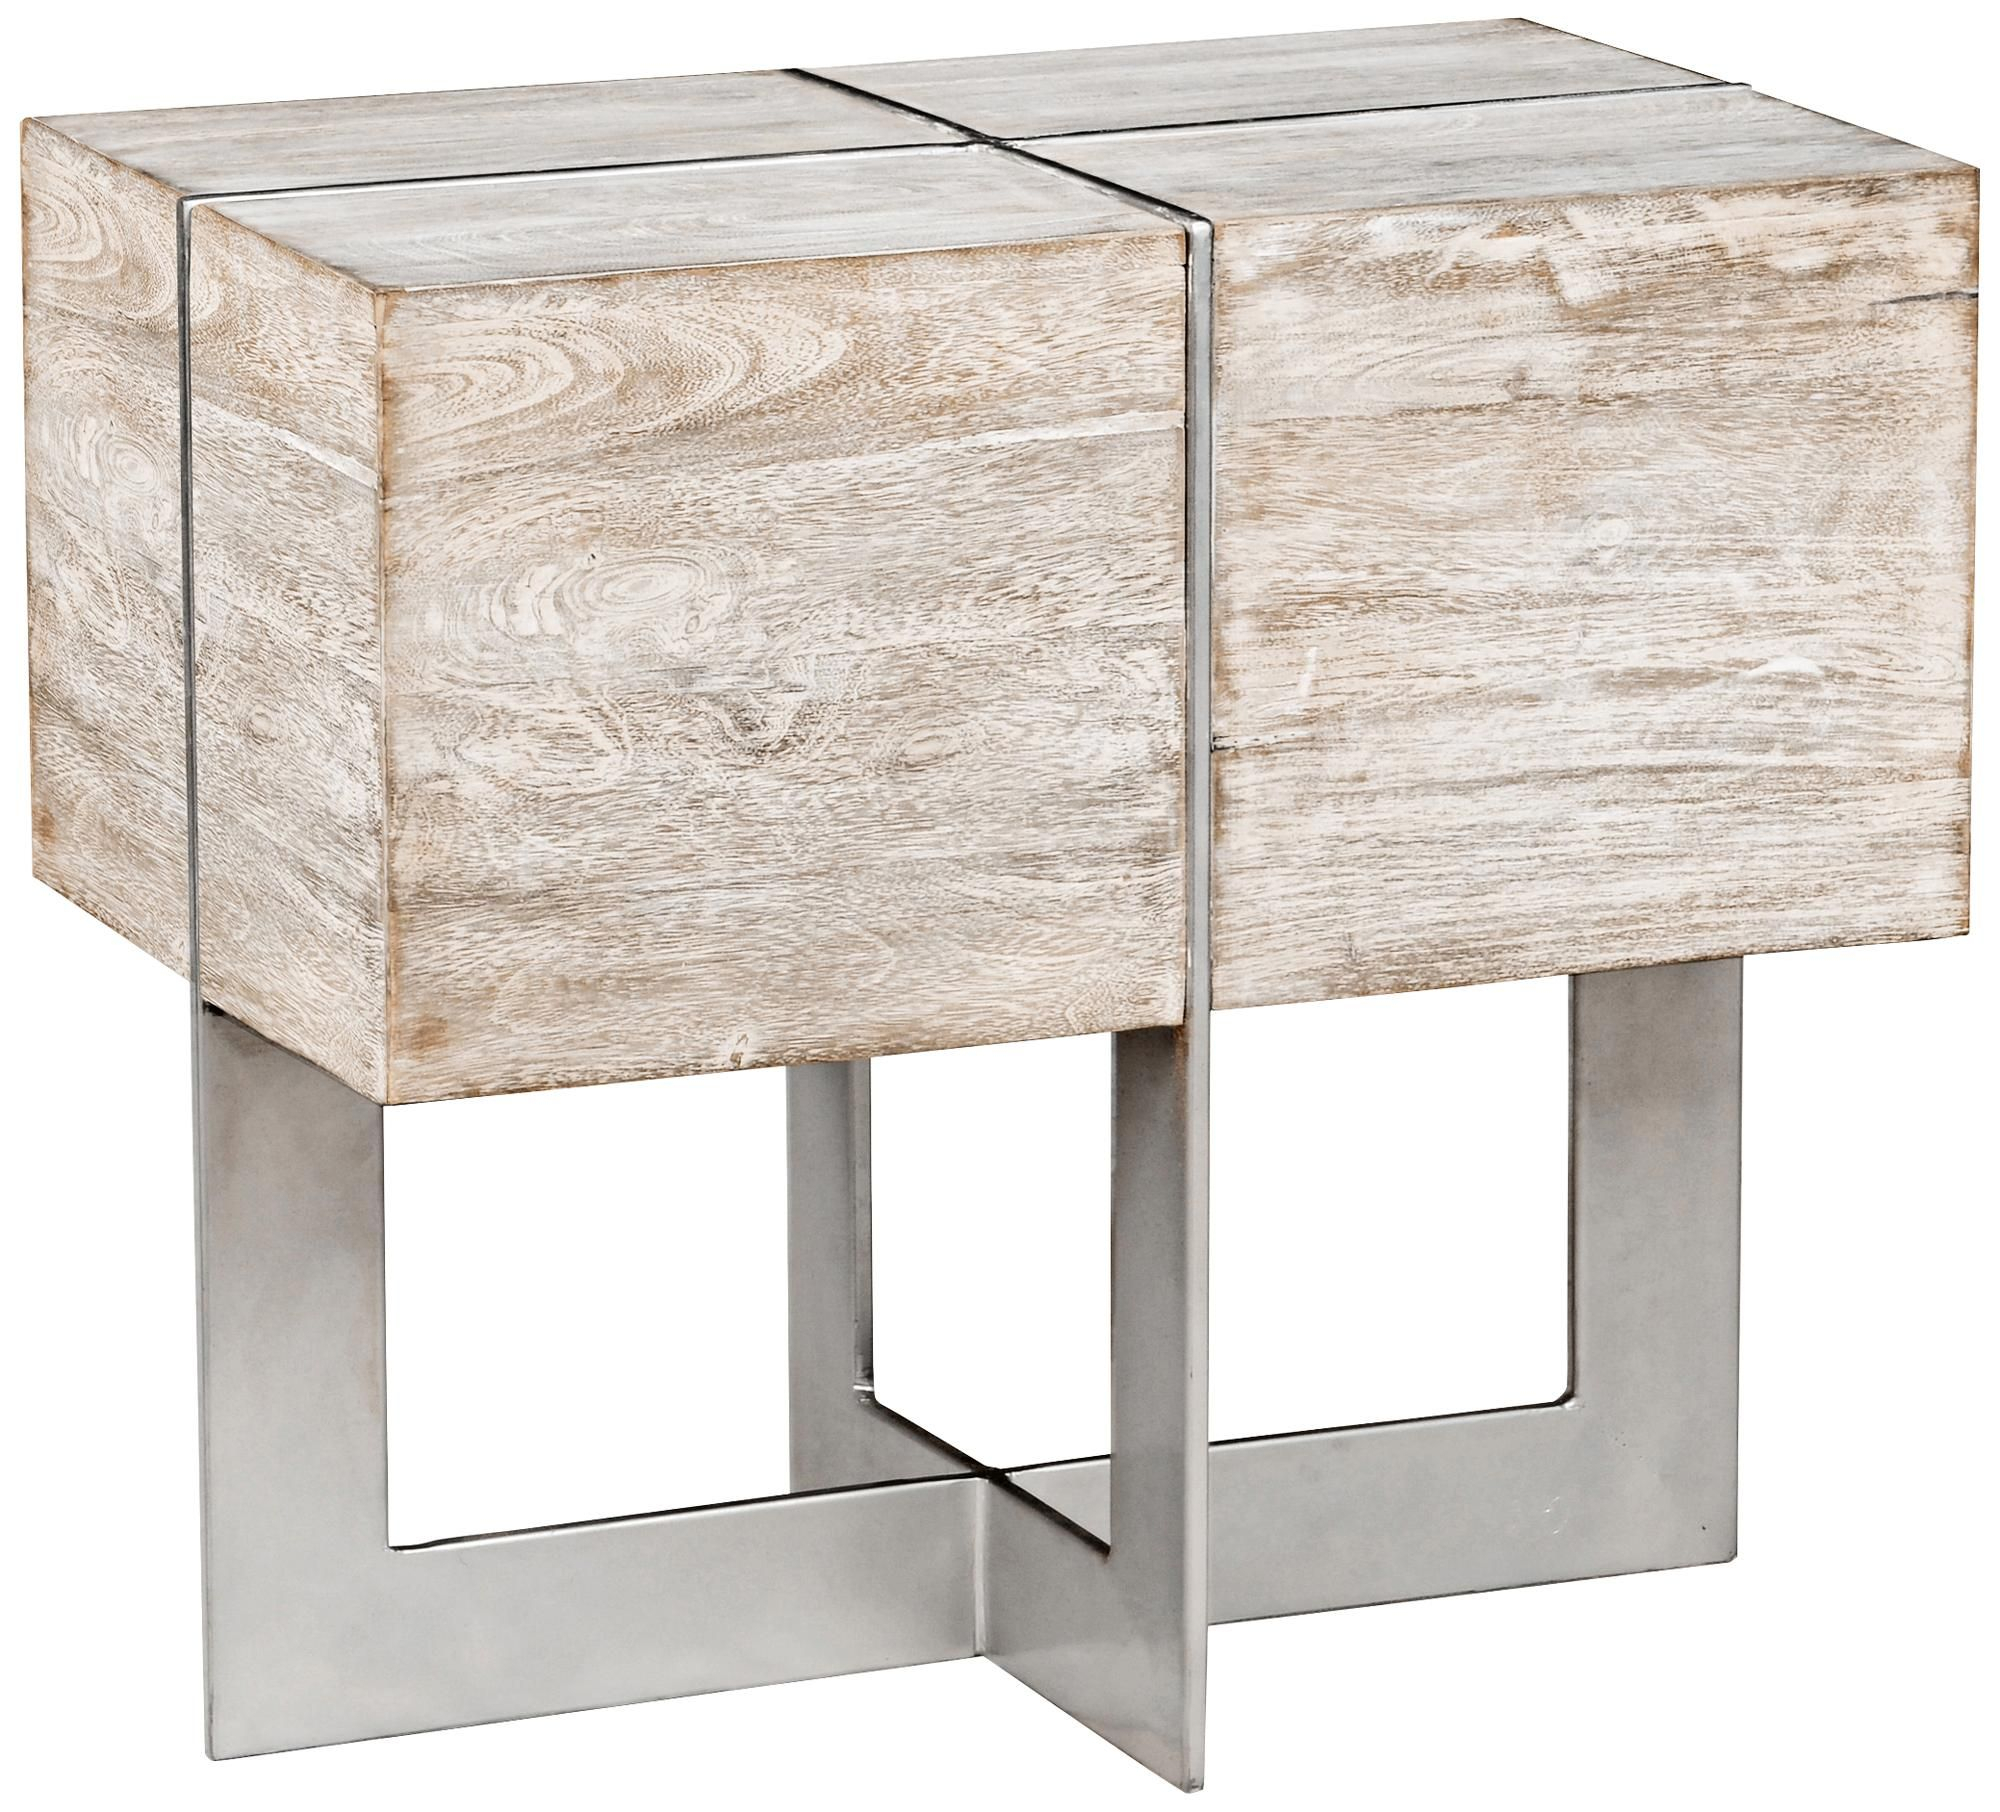 Desmond White Wash Solid Mango Wood Block End Table | Home Accents Throughout Parsons White Marble Top & Dark Steel Base 48X16 Console Tables (Gallery 28 of 30)